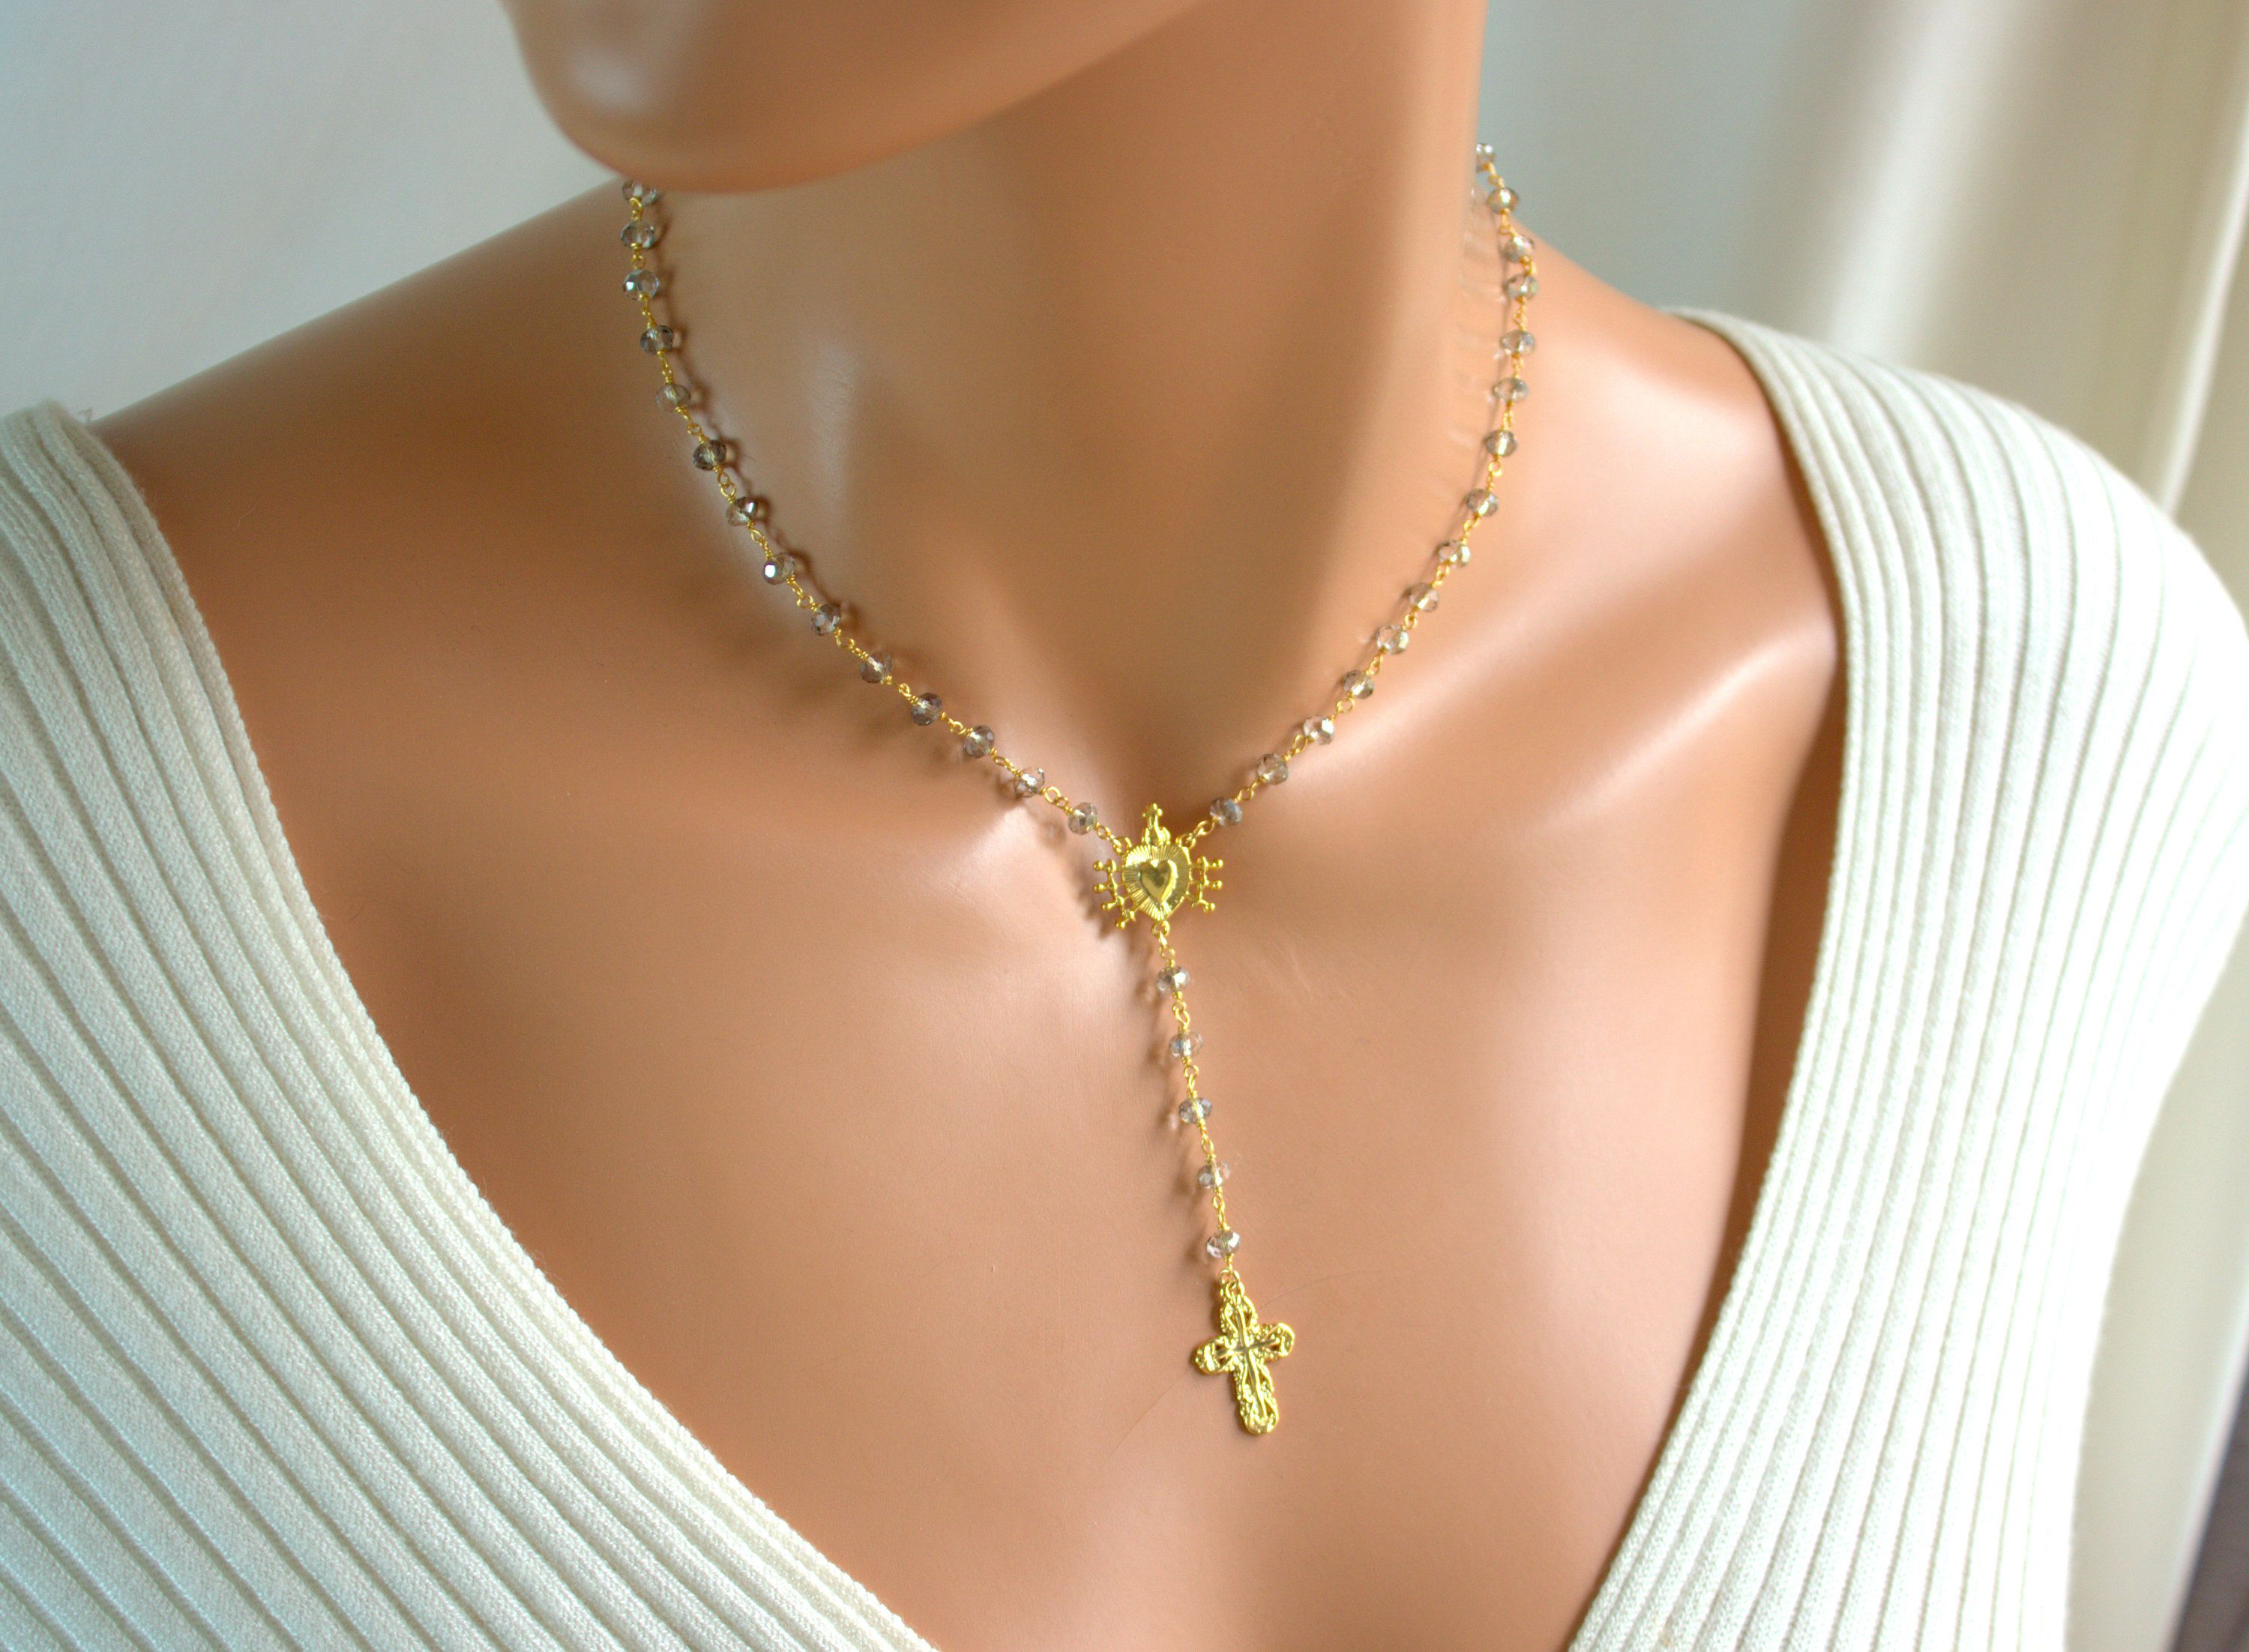 Freshwater cross pendant necklace Multi strand necklace Crystal cross chain necklace Layered charm chain necklace Minimalist